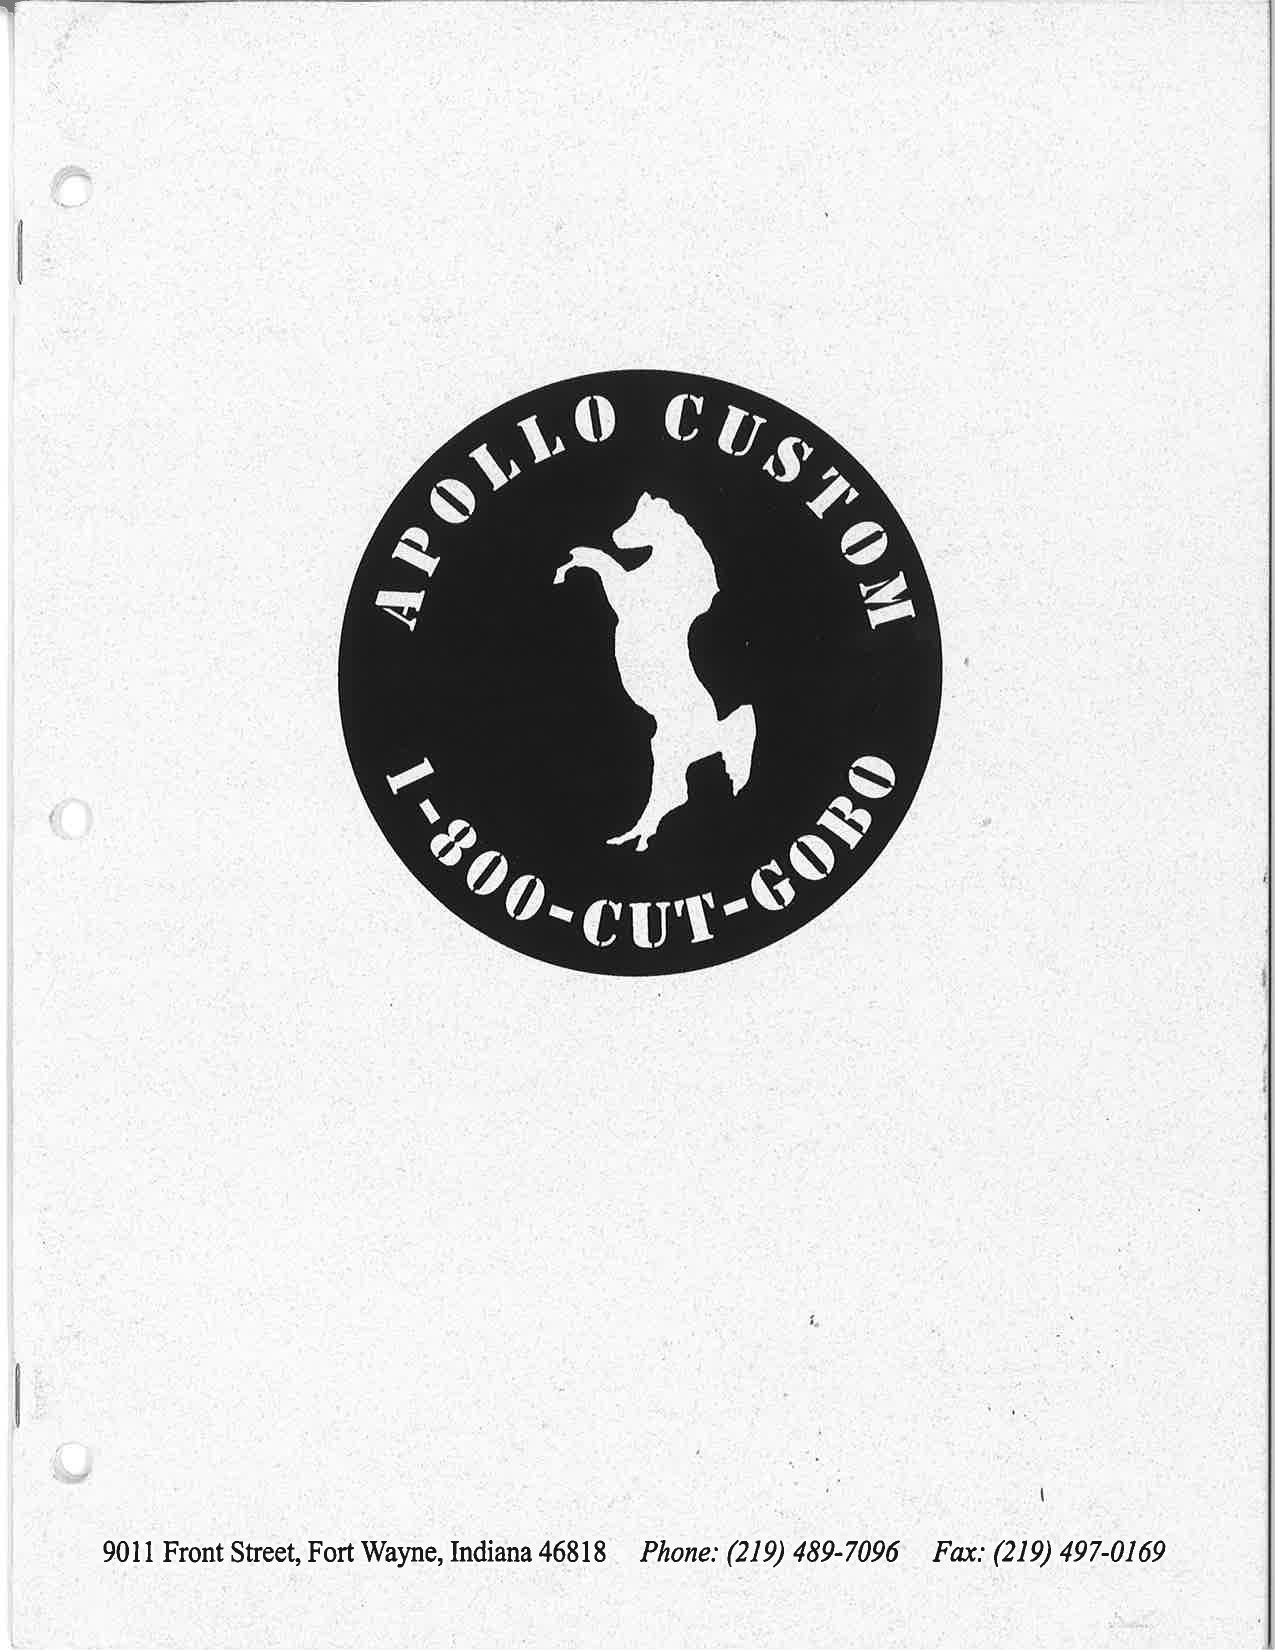 The cover of the 1st Apollo Custom Standards Gobo Catalog.